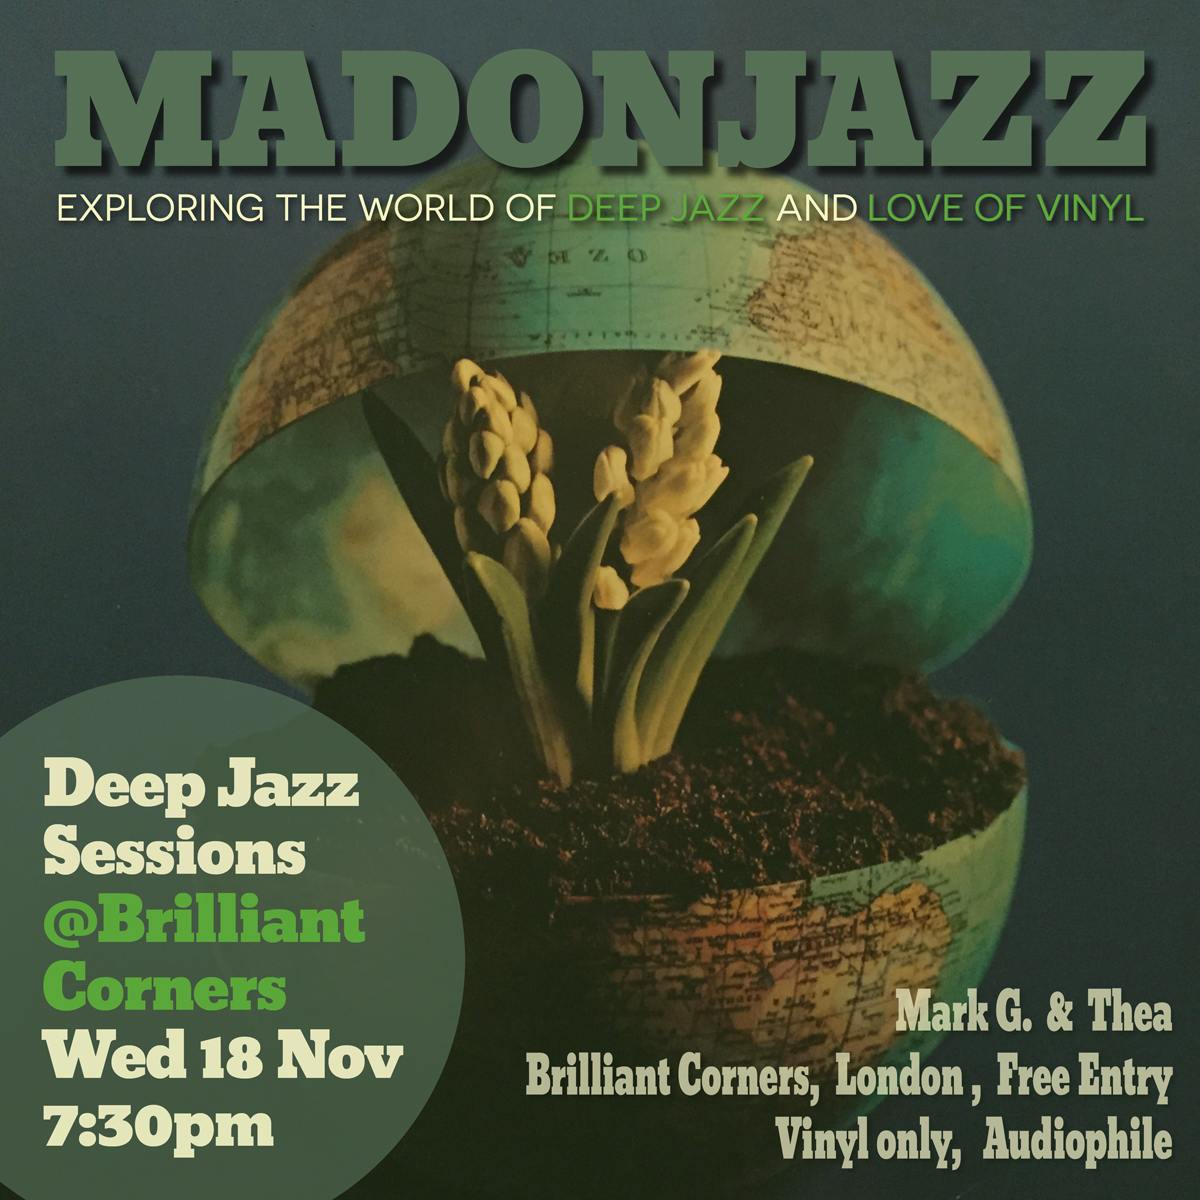 MADONJAZZ - DEEP JAZZ SESSIONS AT BRILLIANT CORNERS 18 NOV